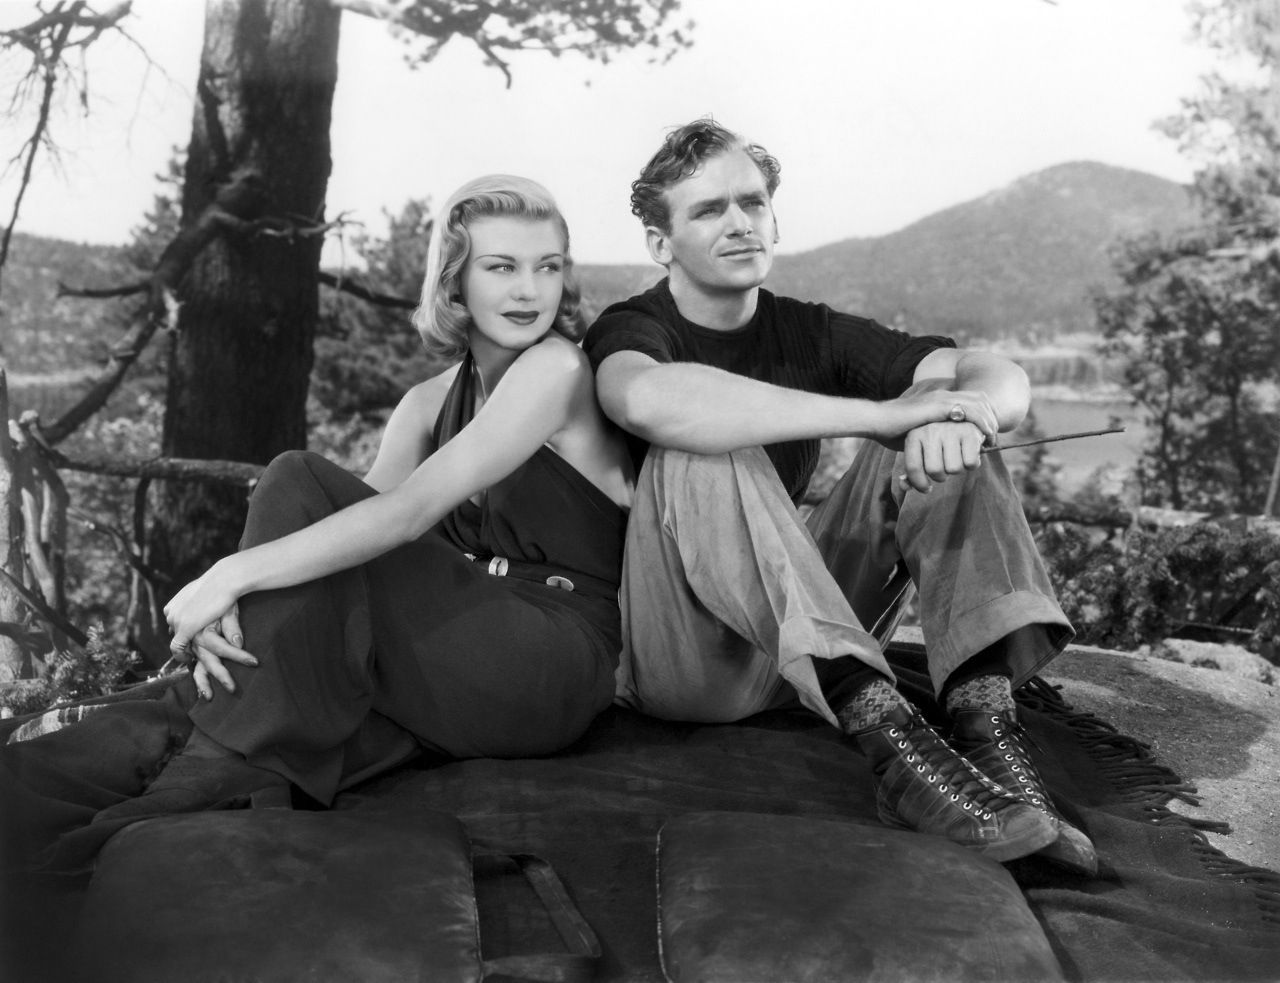 Ginger Rogers and Douglas Fairbanks Jr. in Having Wonderful Time (1938).